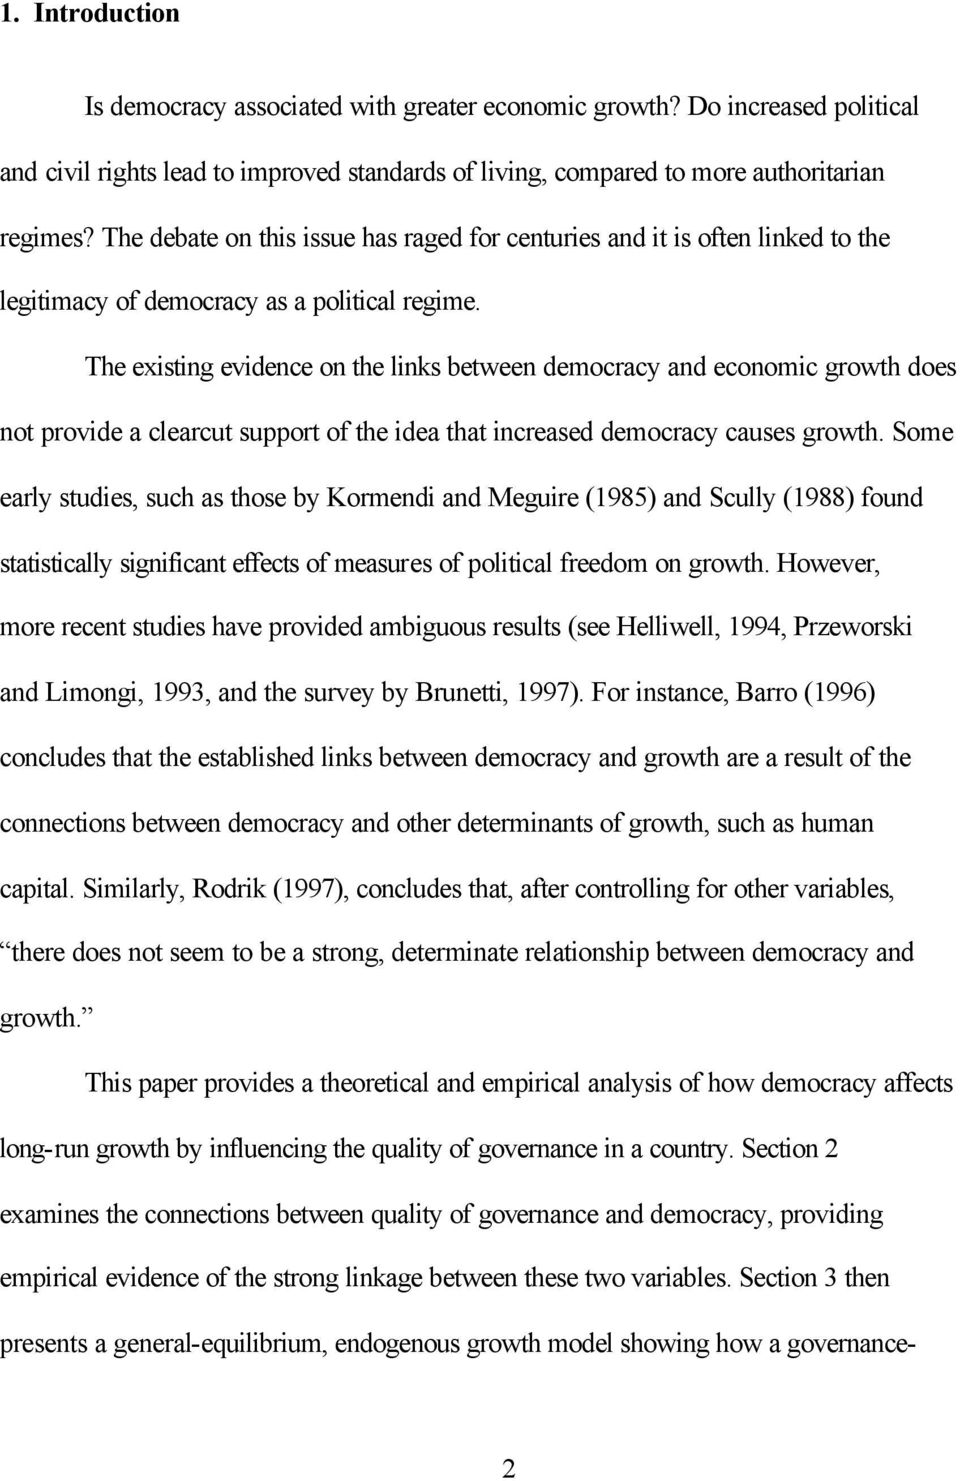 The existing evidence on the links between democracy and economic growth does not provide a clearcut support of the idea that increased democracy causes growth.